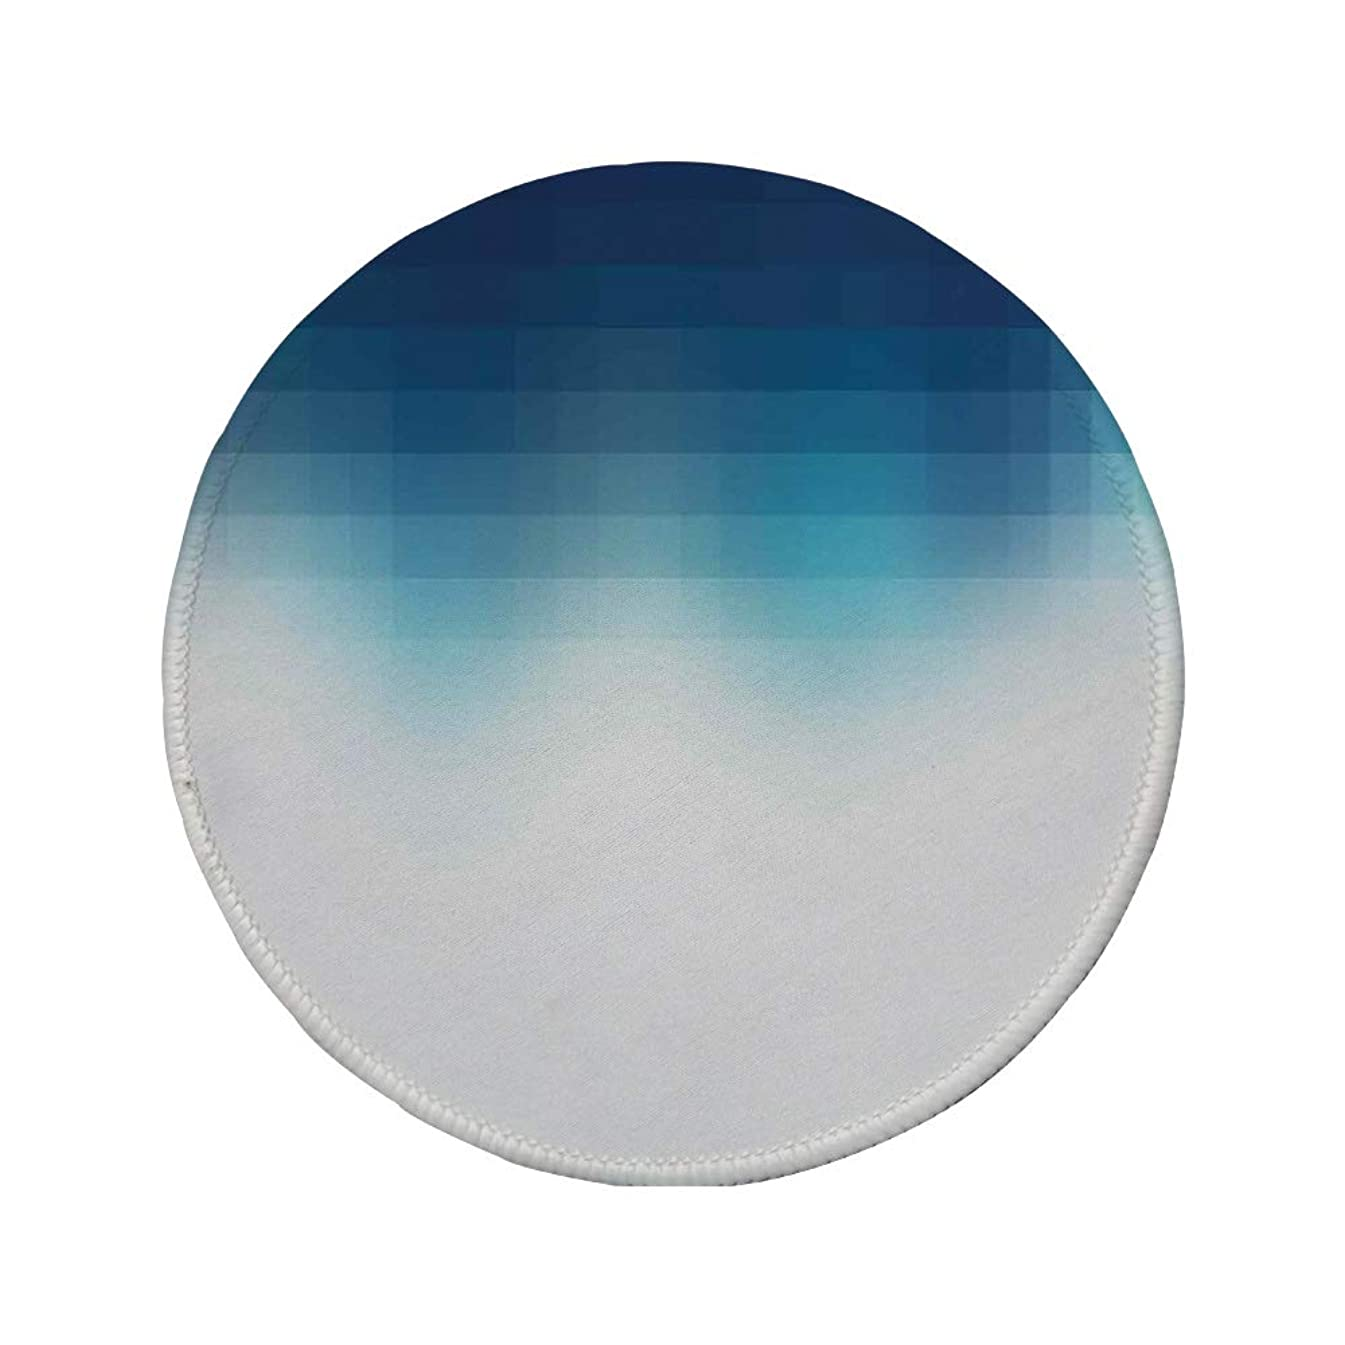 Non-Slip Rubber Round Mouse Pad,Navy Blue Decor,Shaded Digital Square Grid Lined Edgy Mosaic Motifs Pixel Effects Artprint Home,Dark Blue White,11.8